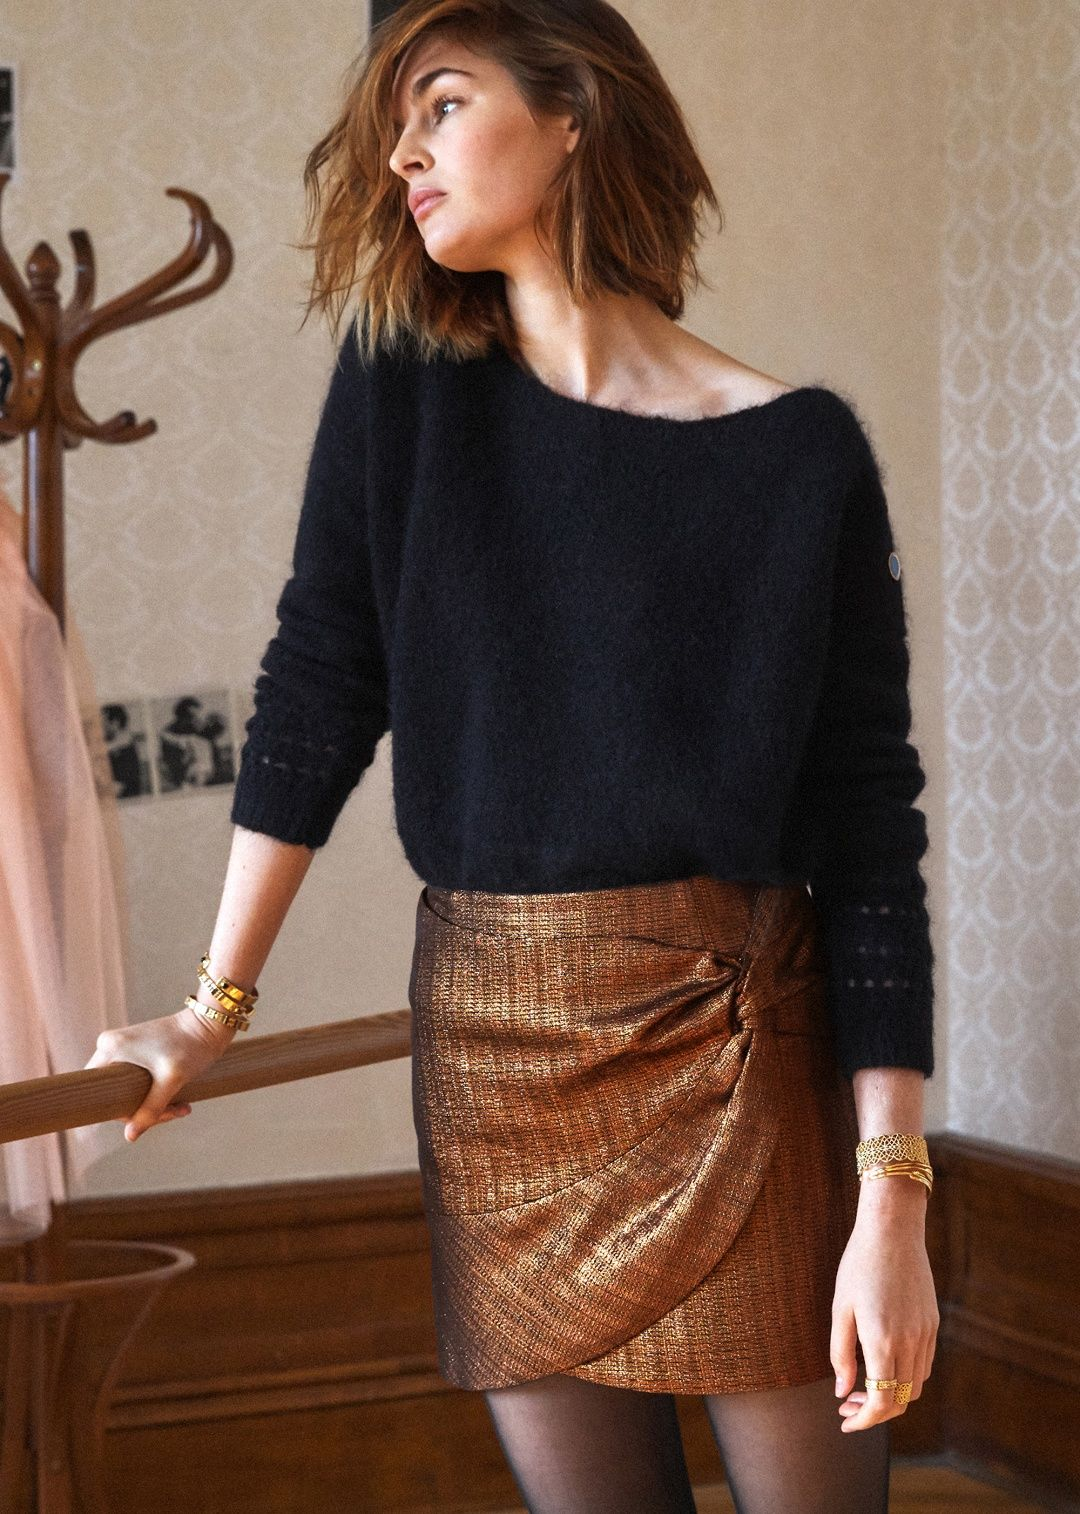 Sézane path skirt wish list pinterest cheryl and winter